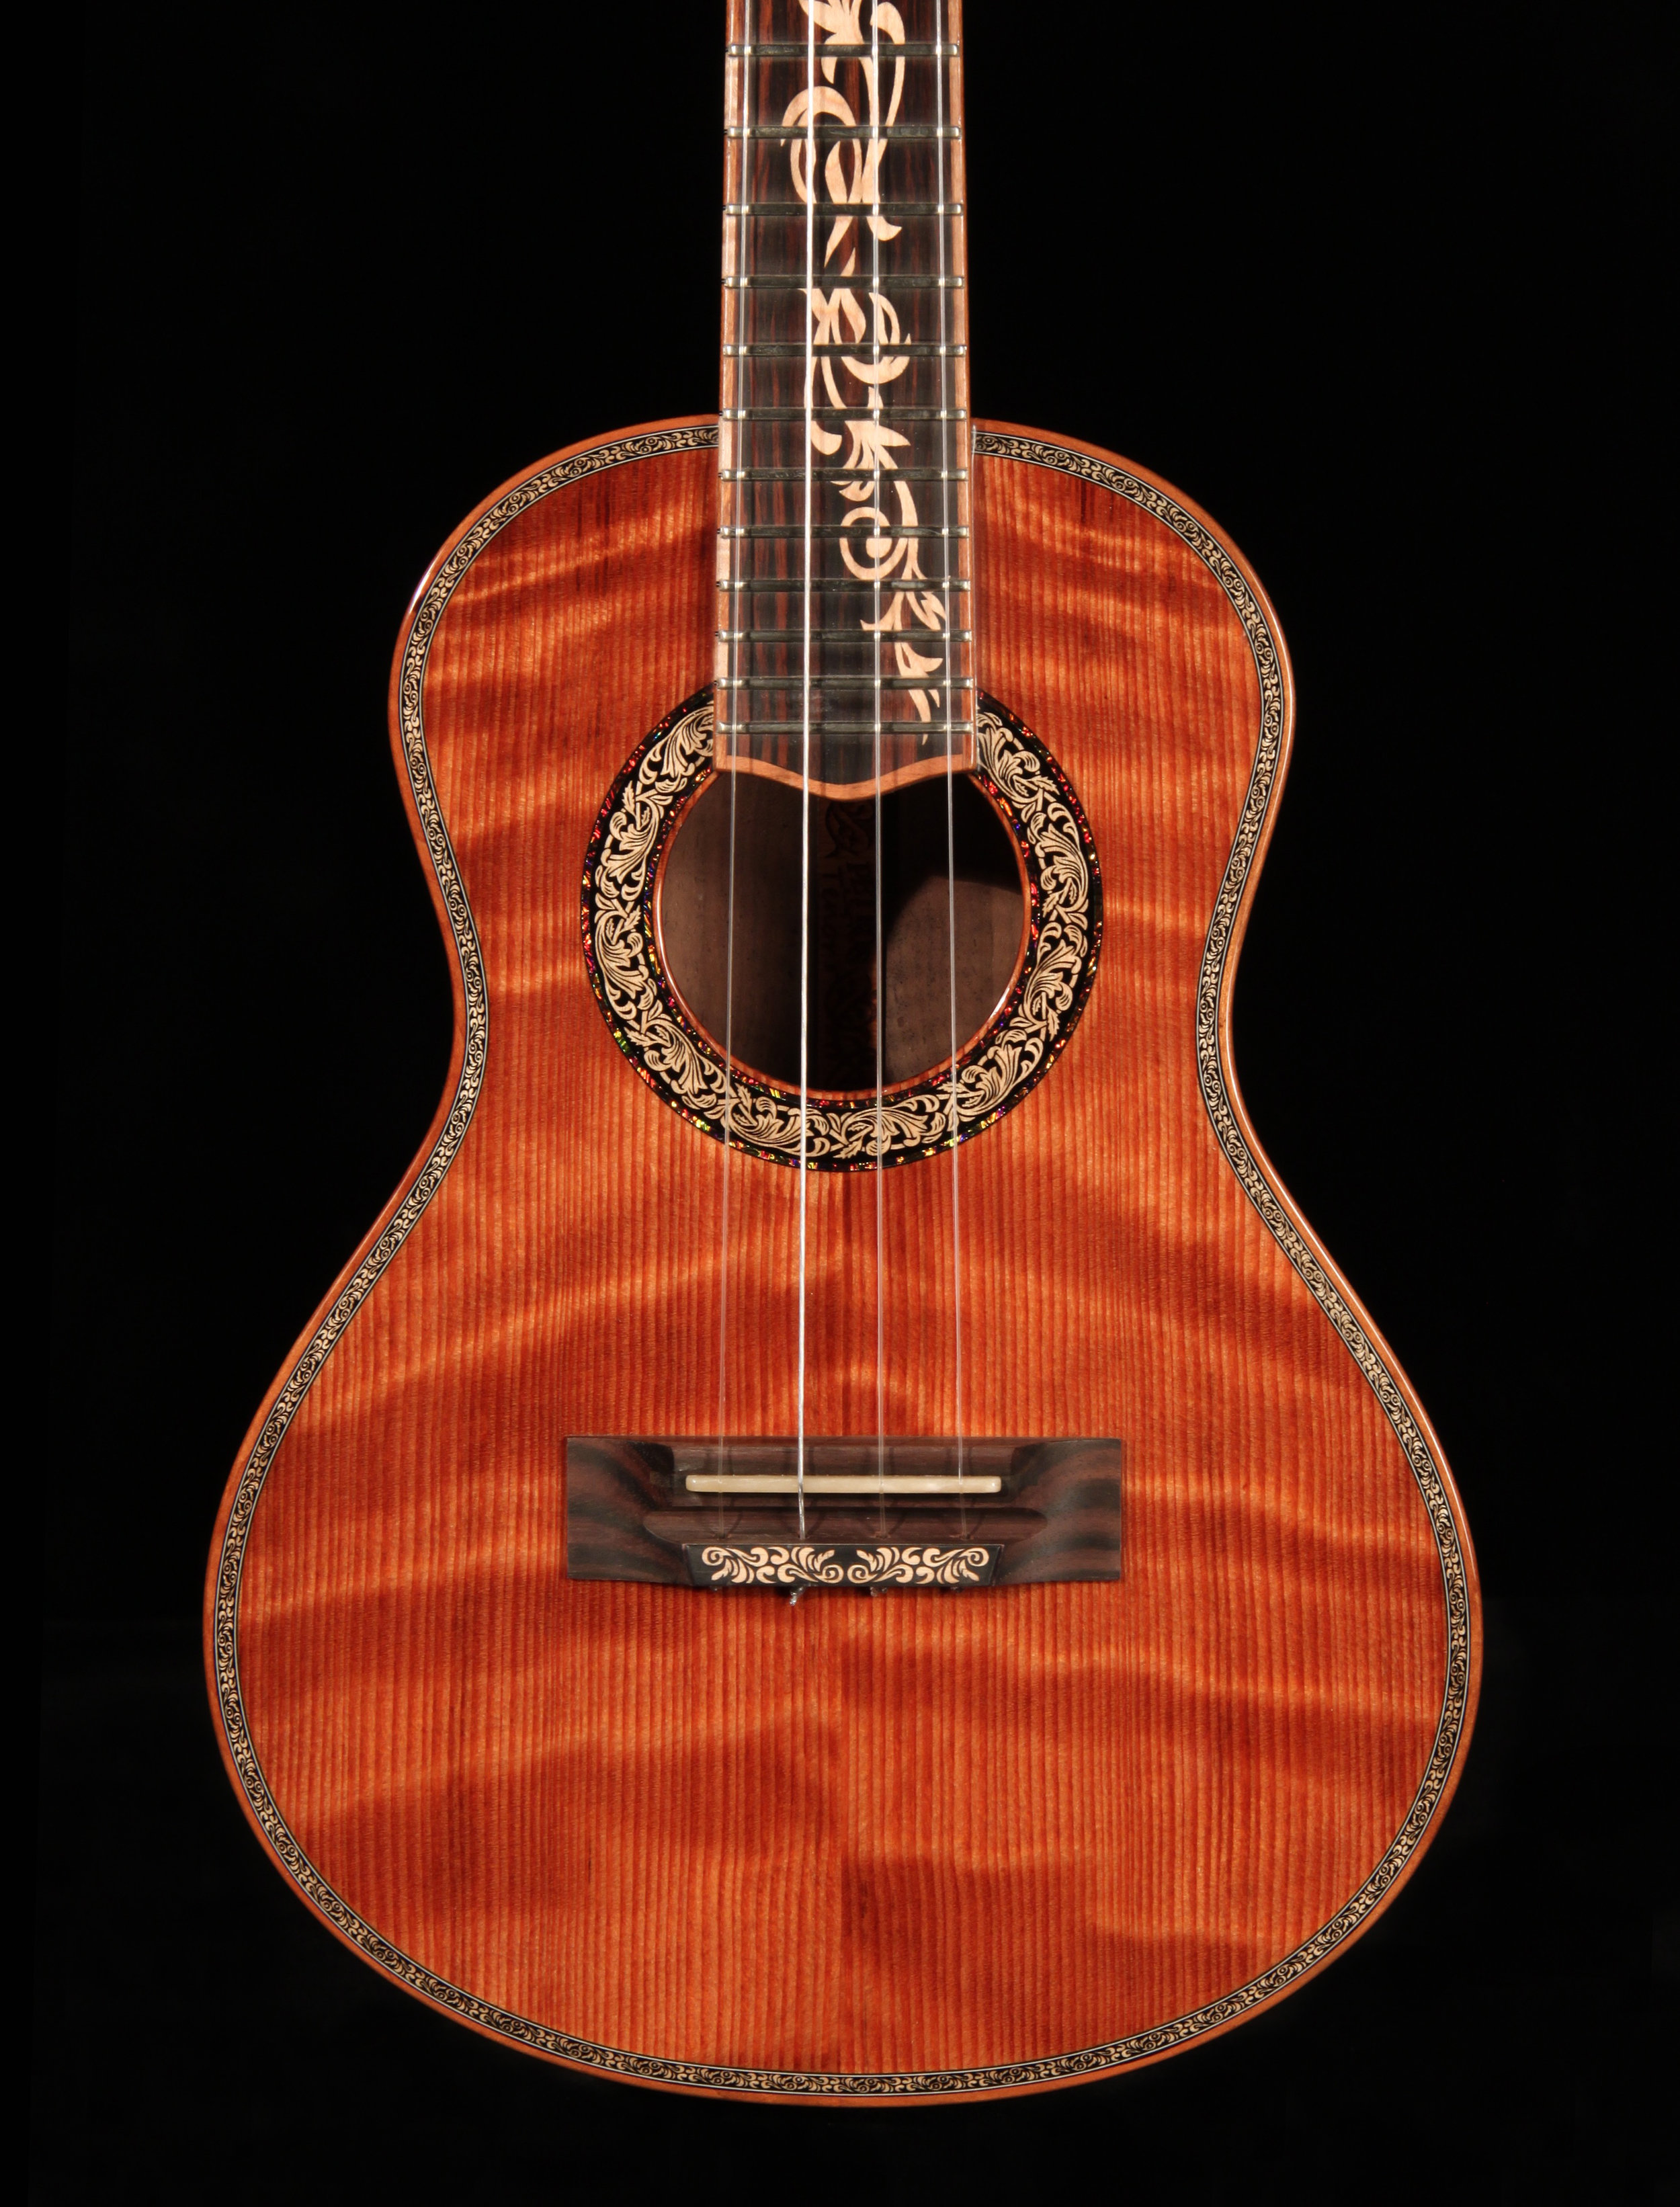 The Florentine Walnut Tenor    With Sound and Video Example